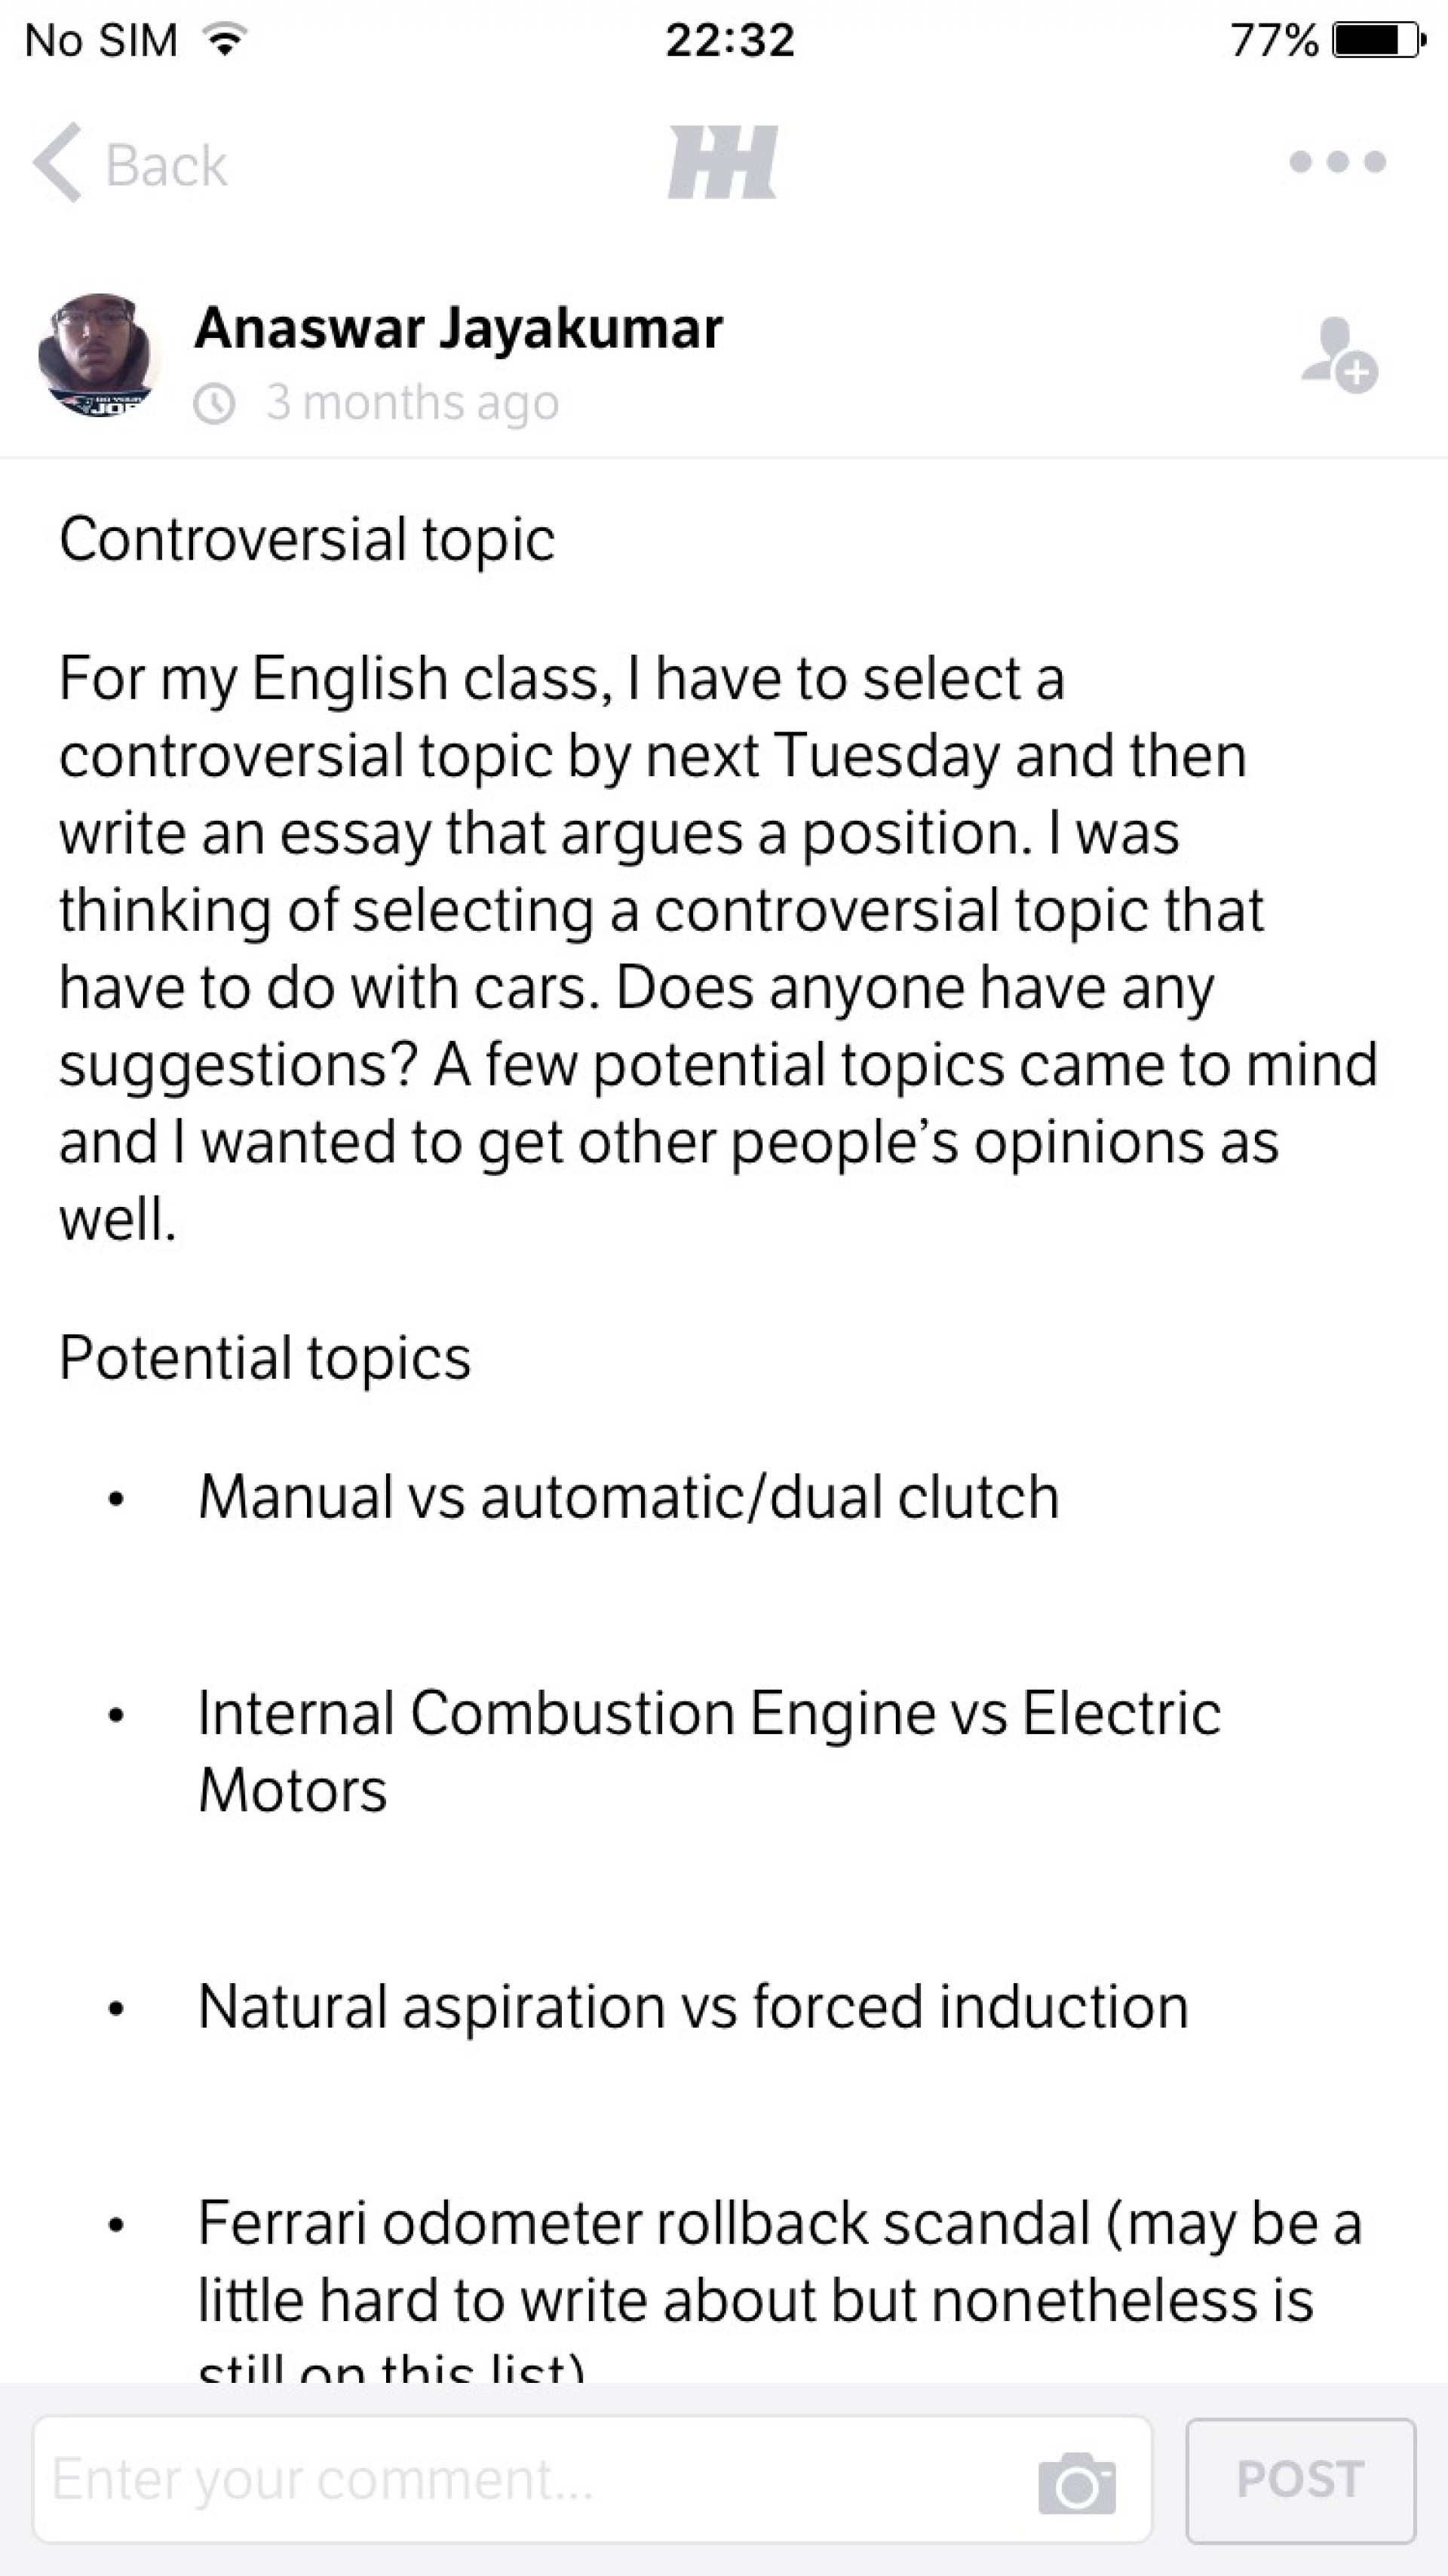 011 Controversial Topic Essay Topics Example Research Paper Outline20 Breathtaking Issue 1920